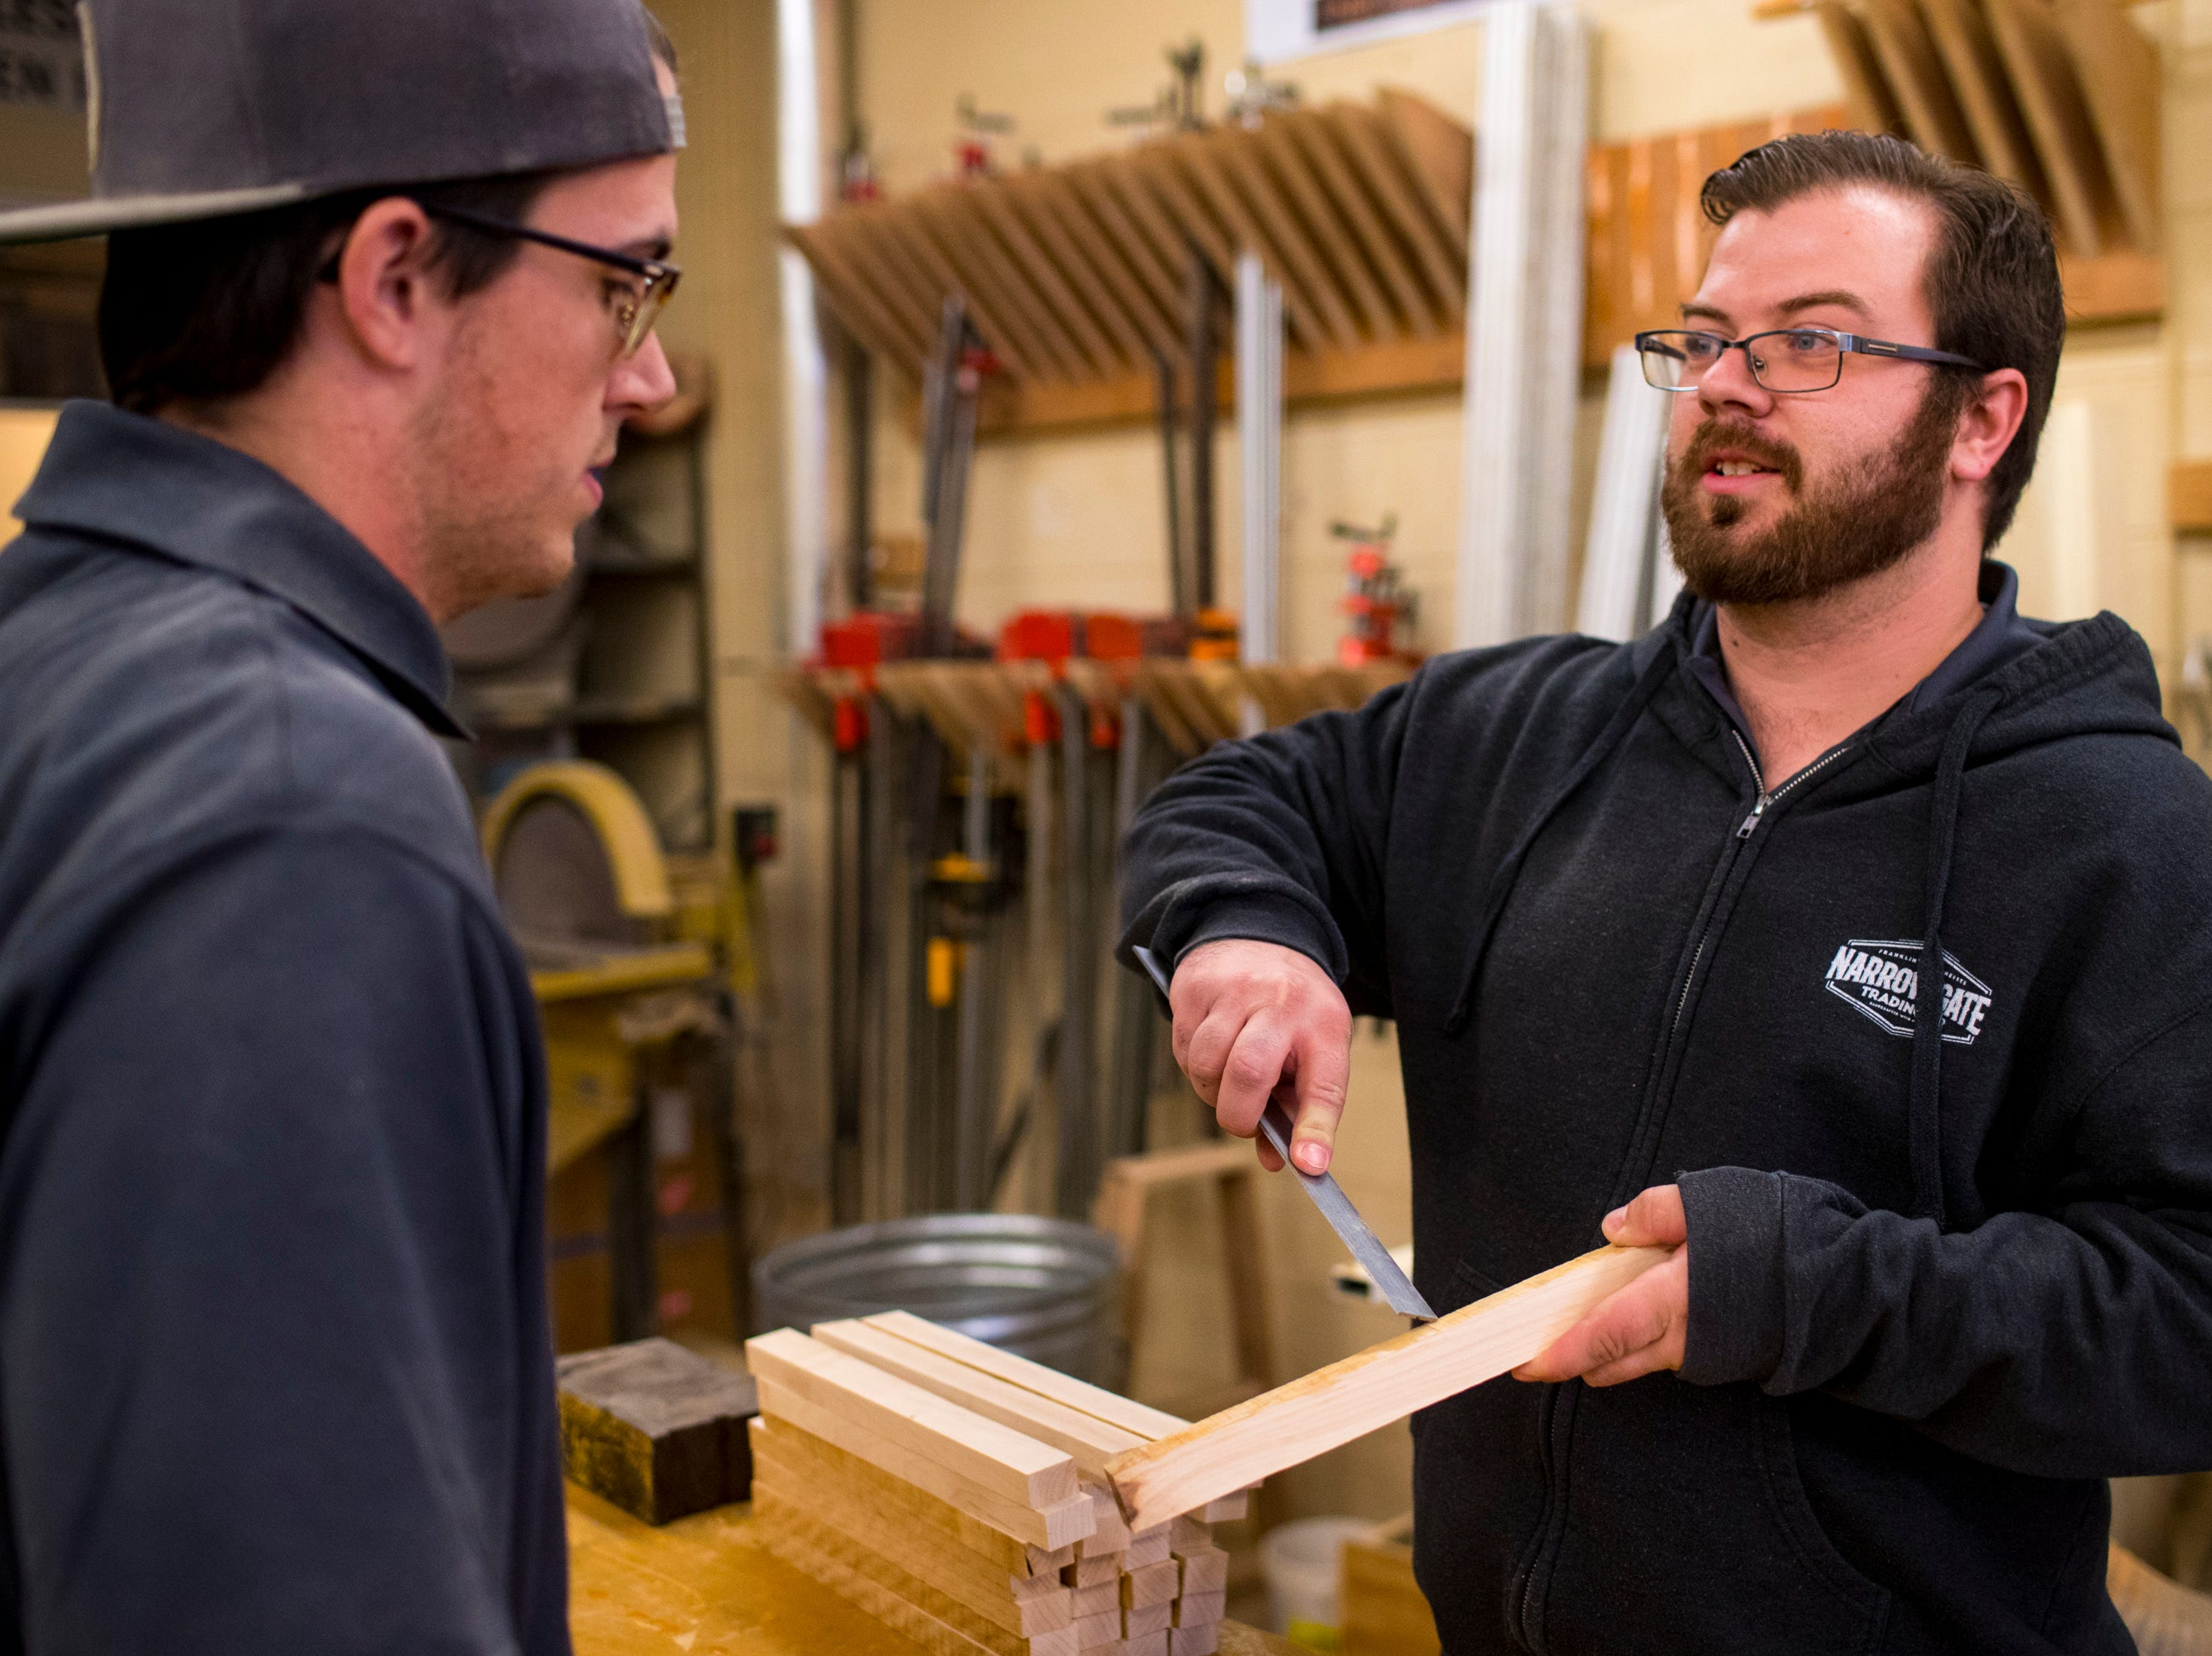 TN Box Beams representative Kenny Bowling, right, gives guidance to Heath Hill at TN Box Beam in Franklin on Friday, Nov. 9, 2018. TN Box Beams will be featured on the HGTV show Property Brothers Buying + Selling on Nov. 14.